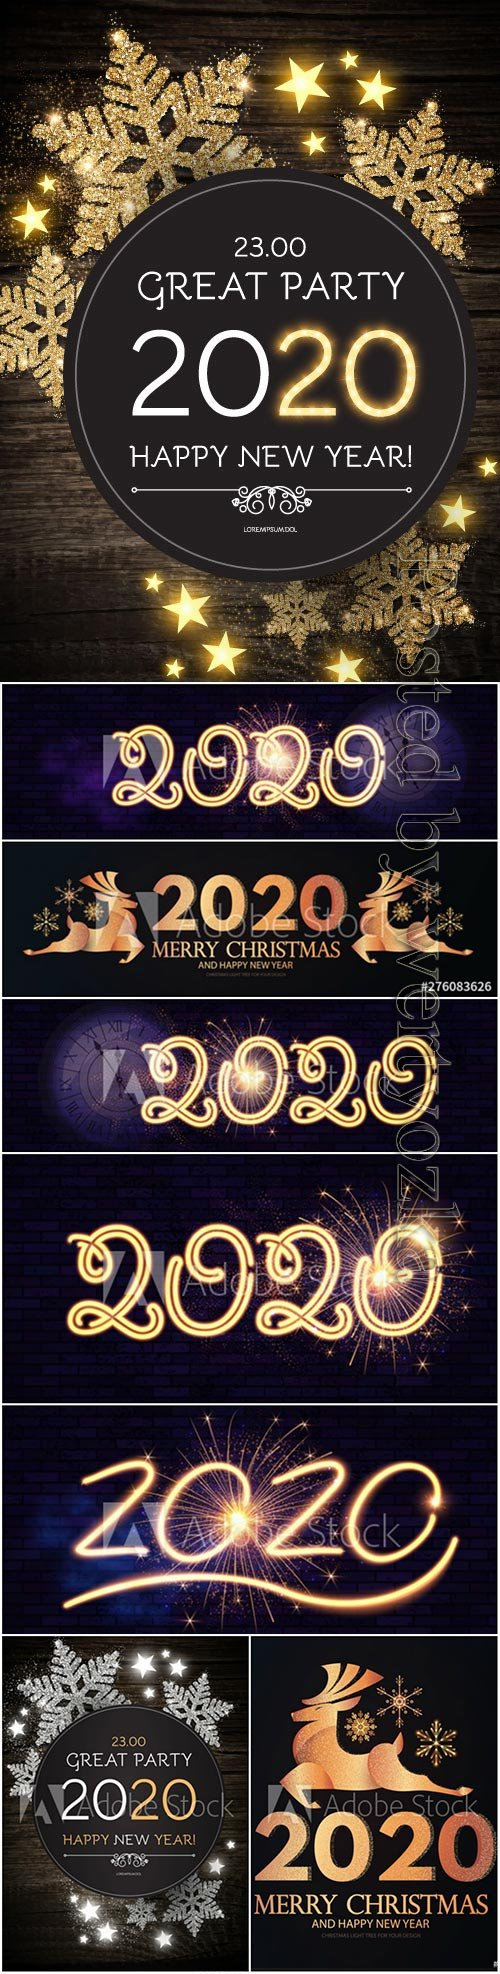 2020 Christmas and New Year vector backgrounds with golden